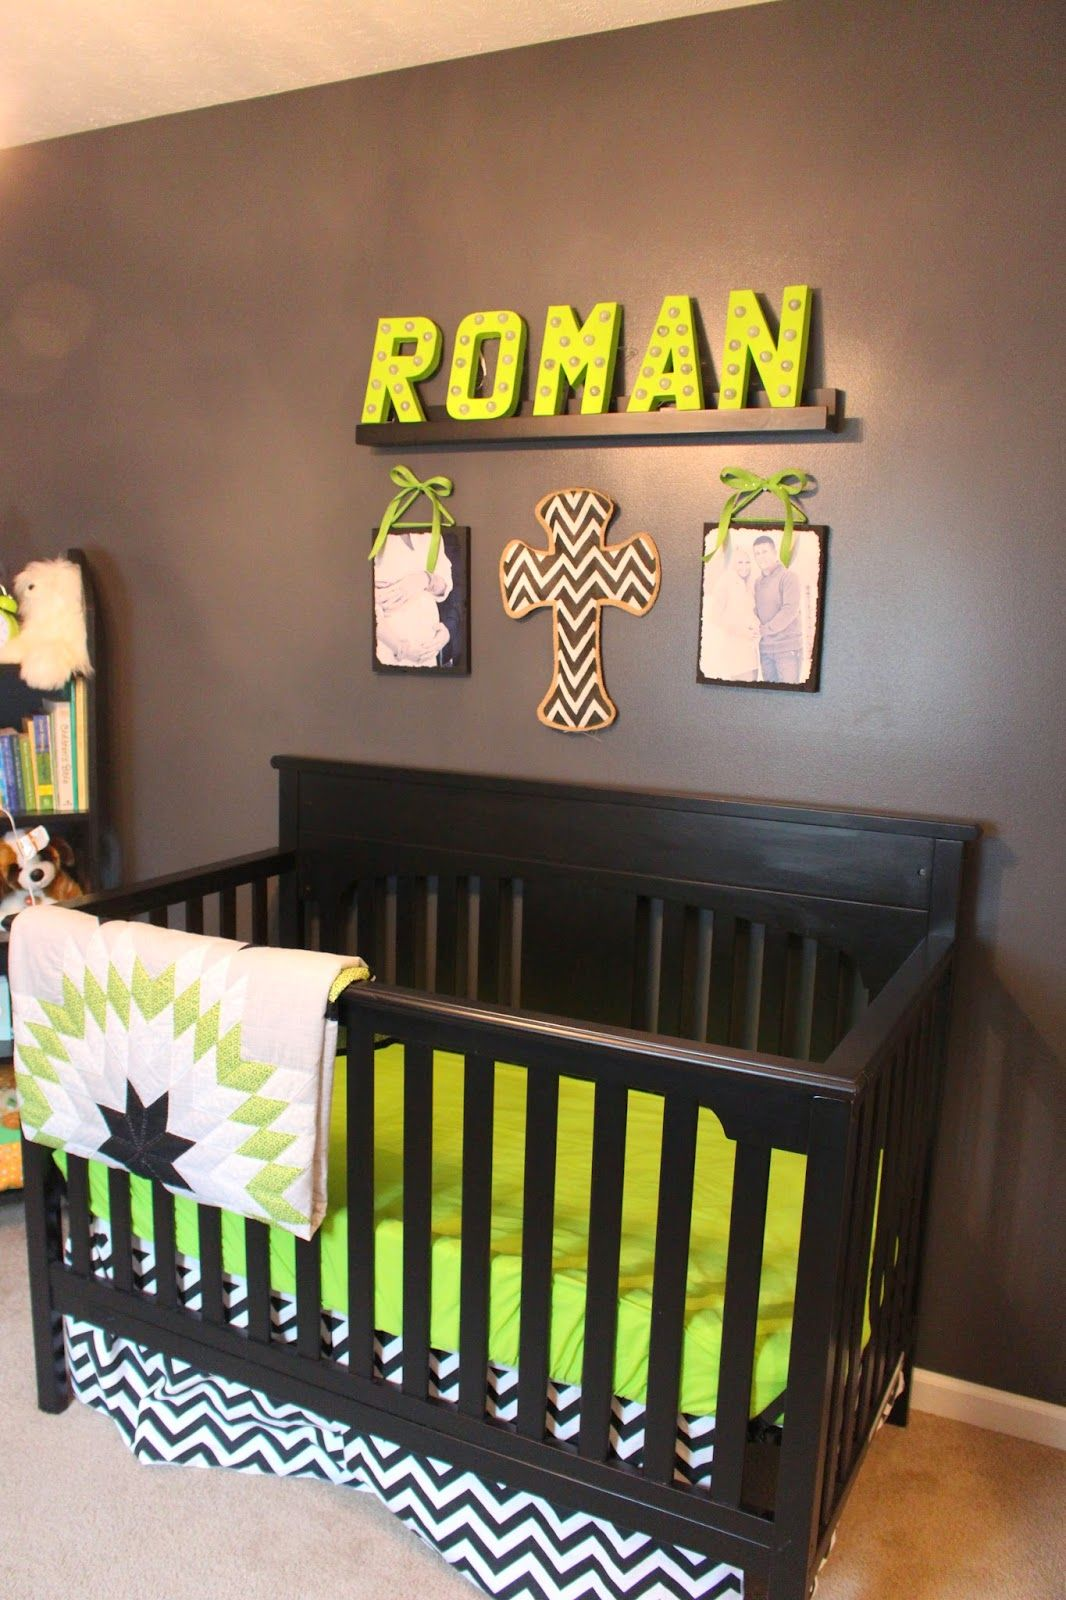 Name marquee for a little boys room or nursery, light up, different, unique